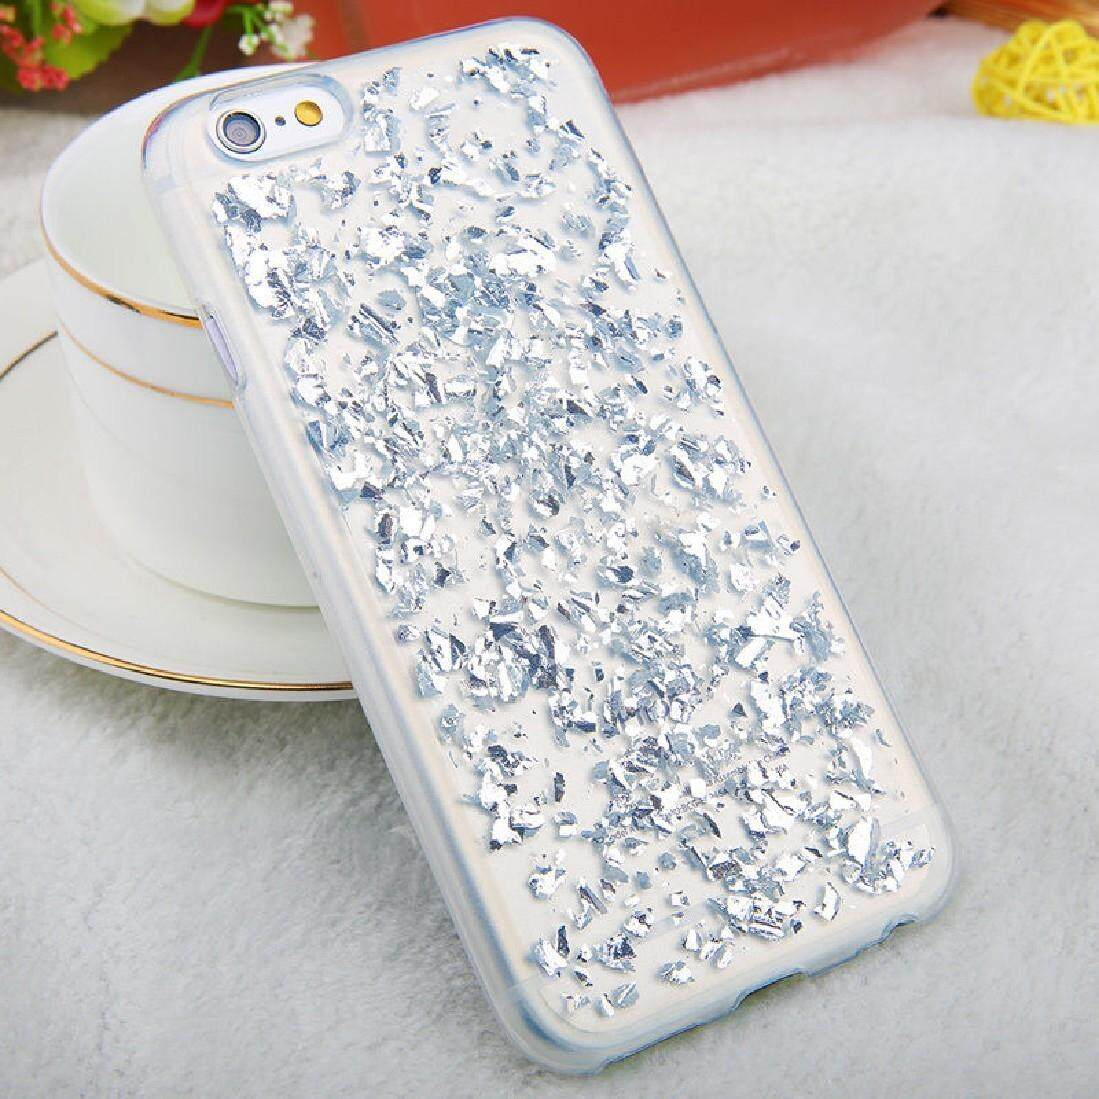 For iPhone 6 & 6s Scattered Platinum Pattern TPU Protective Case(Silver) - intl